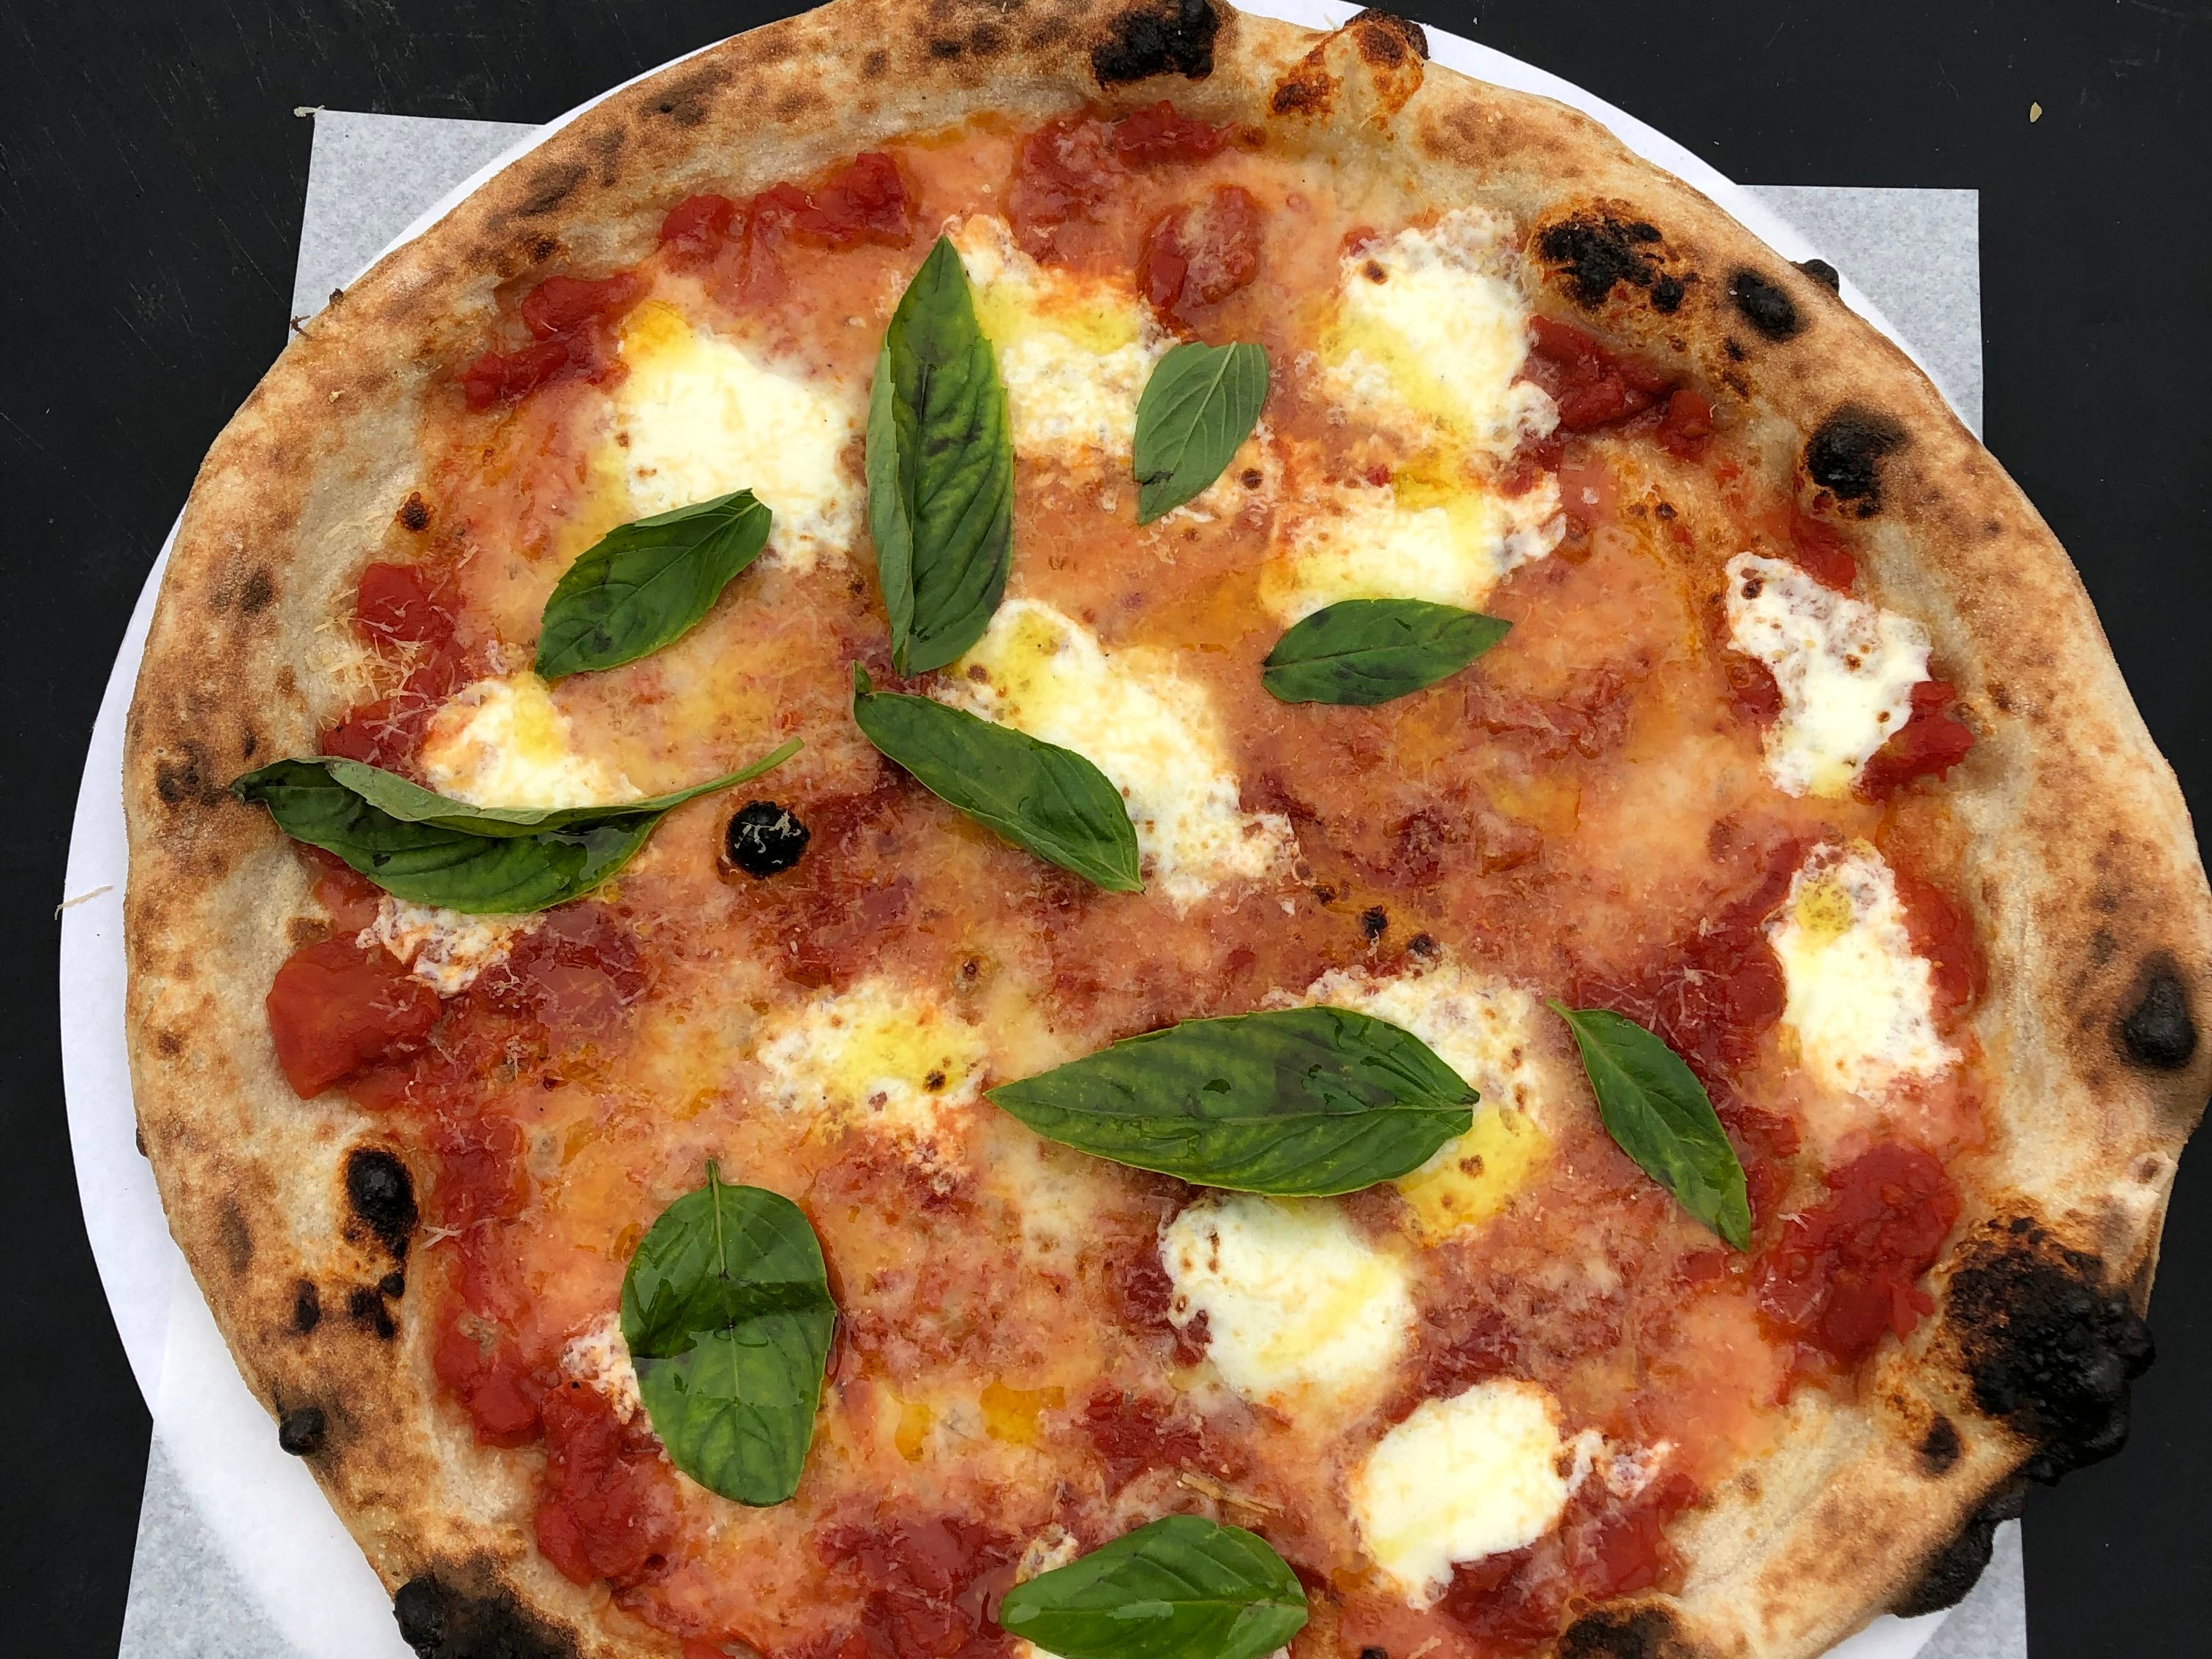 The margherita pizza from Myke's Pizza.